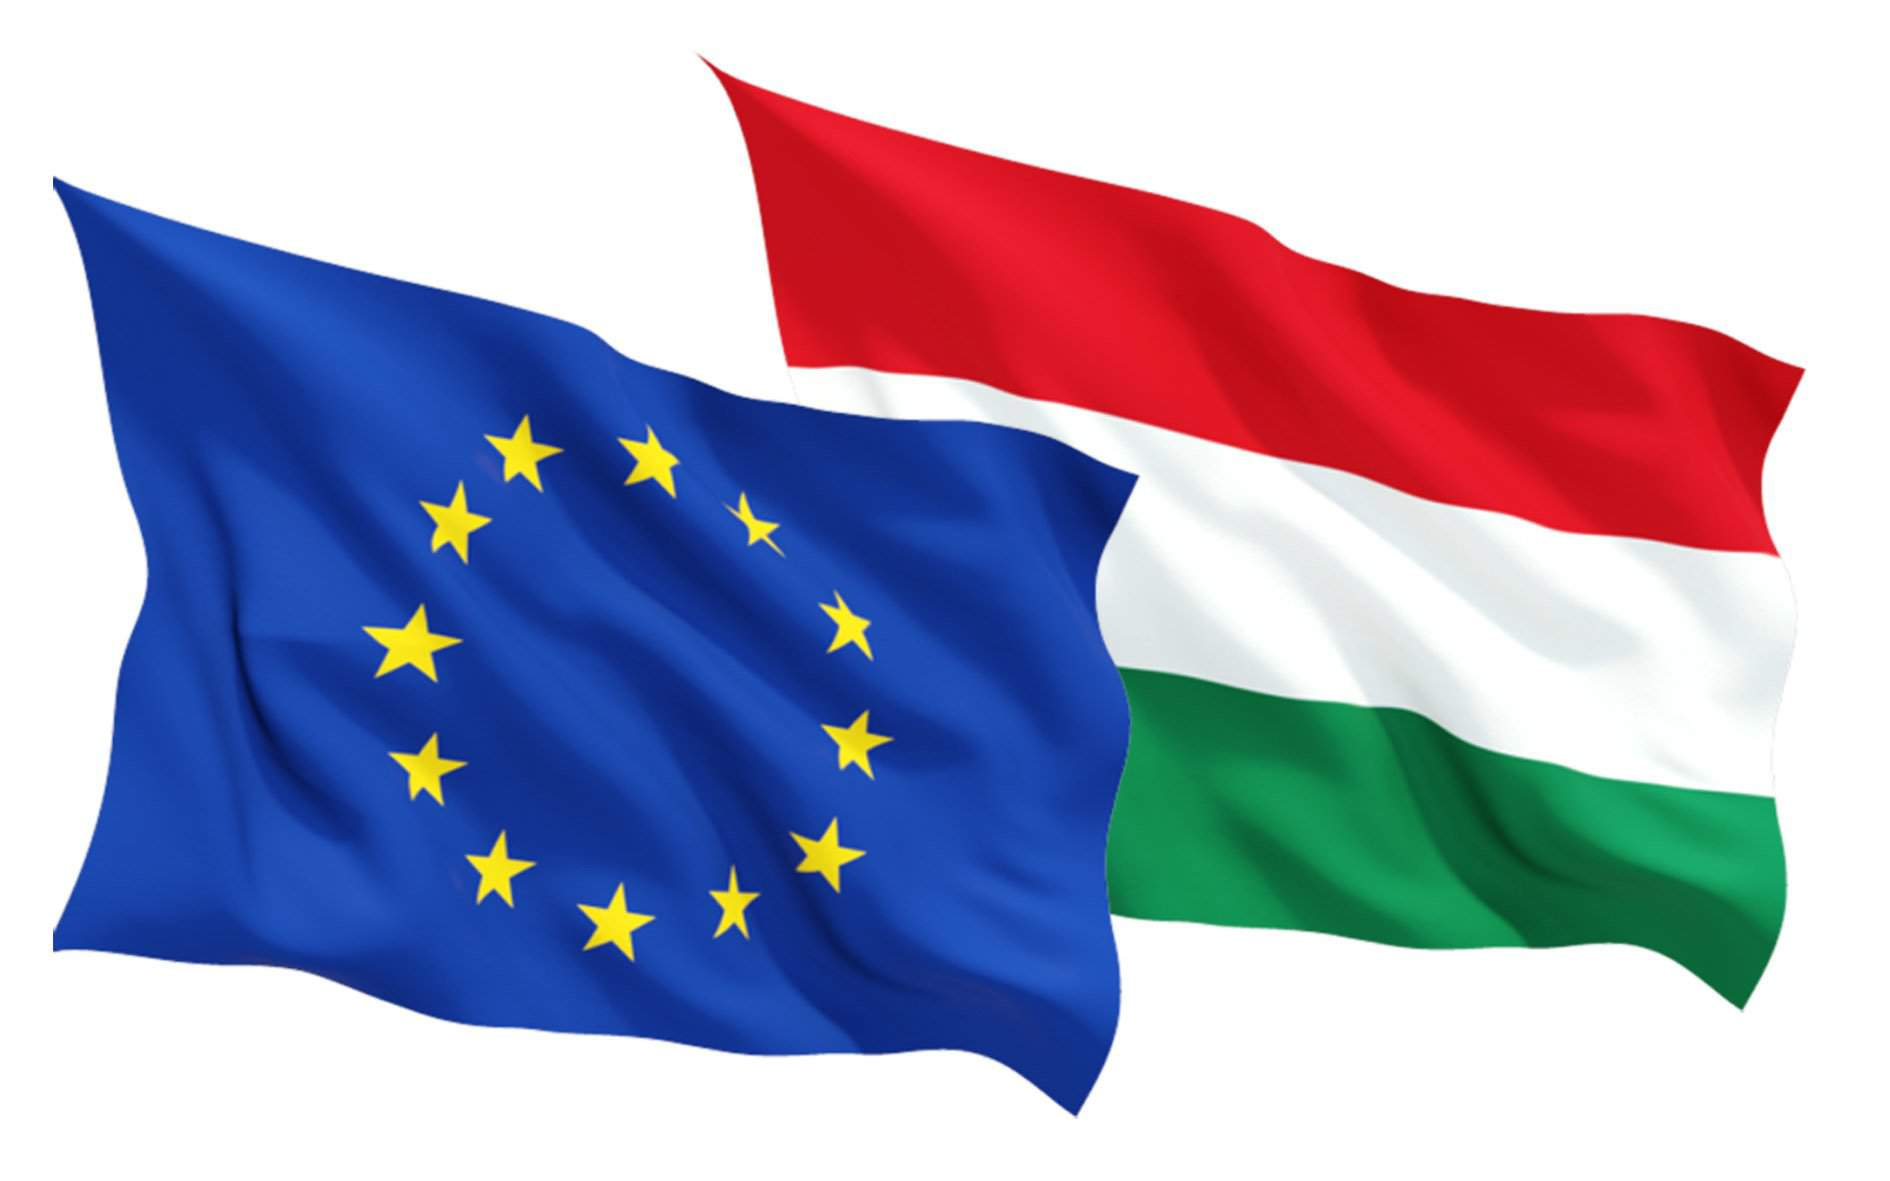 Opposition parties criticise Orbán over positions at EU summit